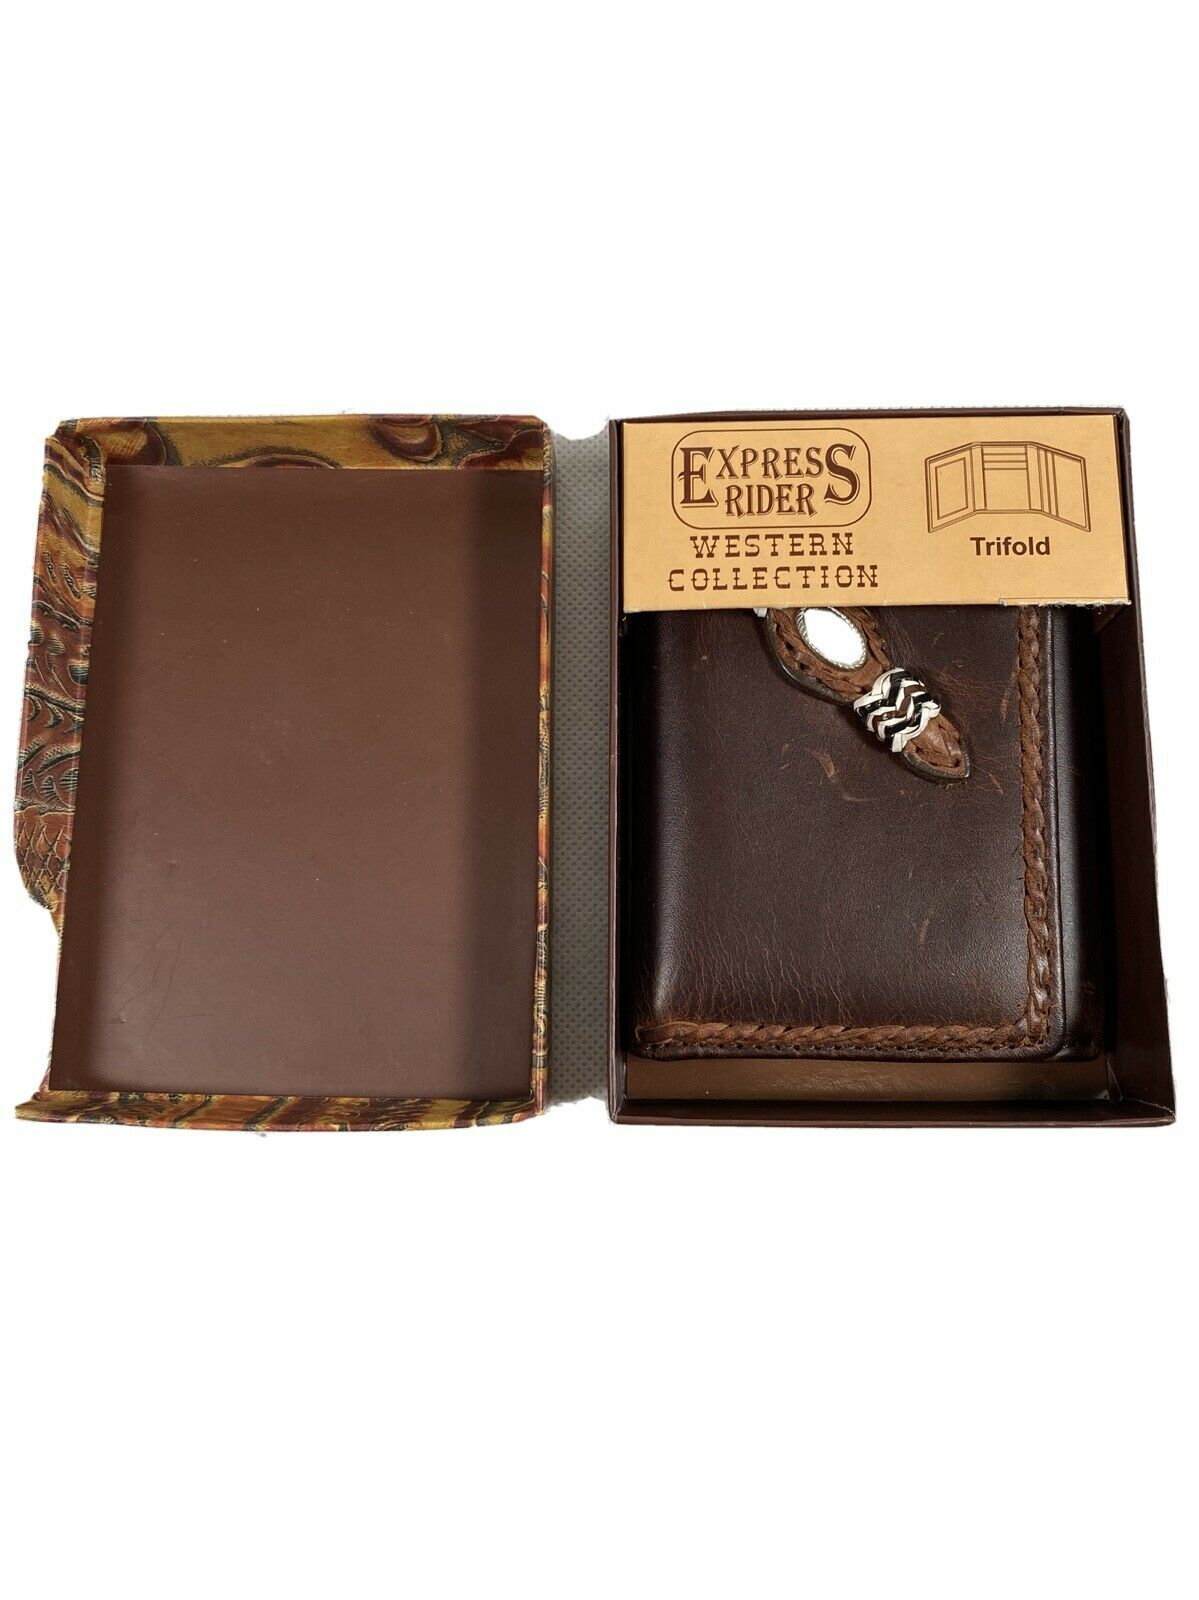 Express Riders Western Collection Trifold Wallet